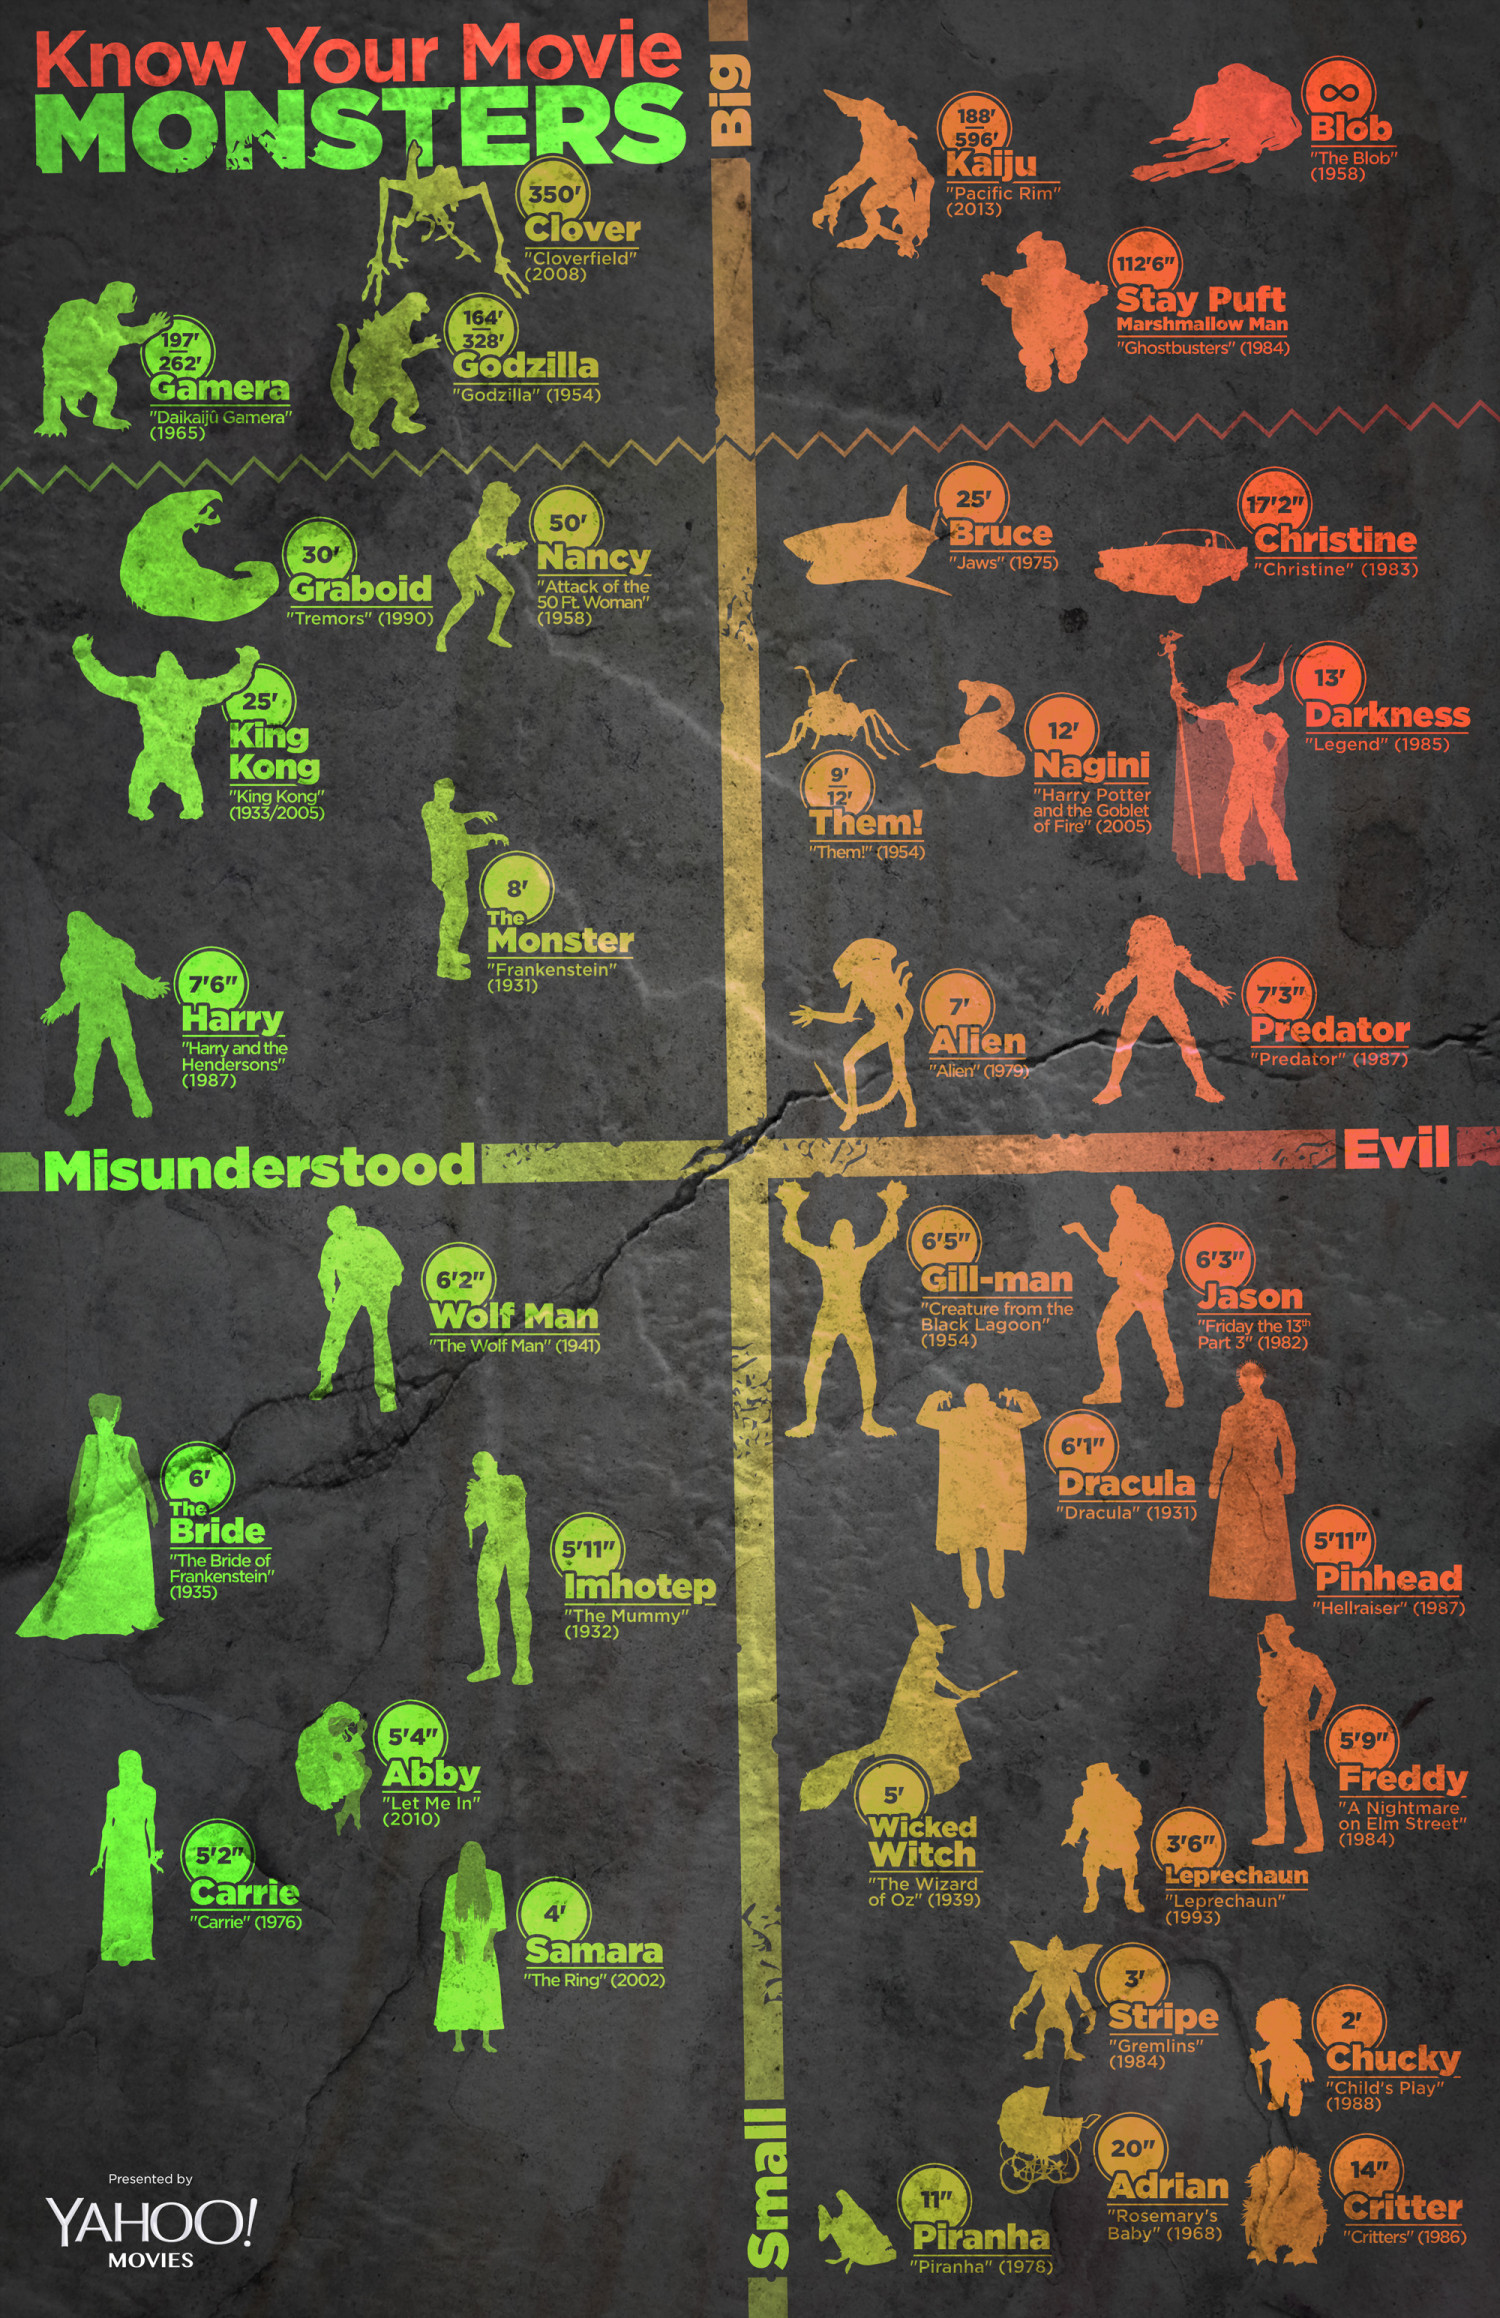 Know Your Movie Monsters Infographic